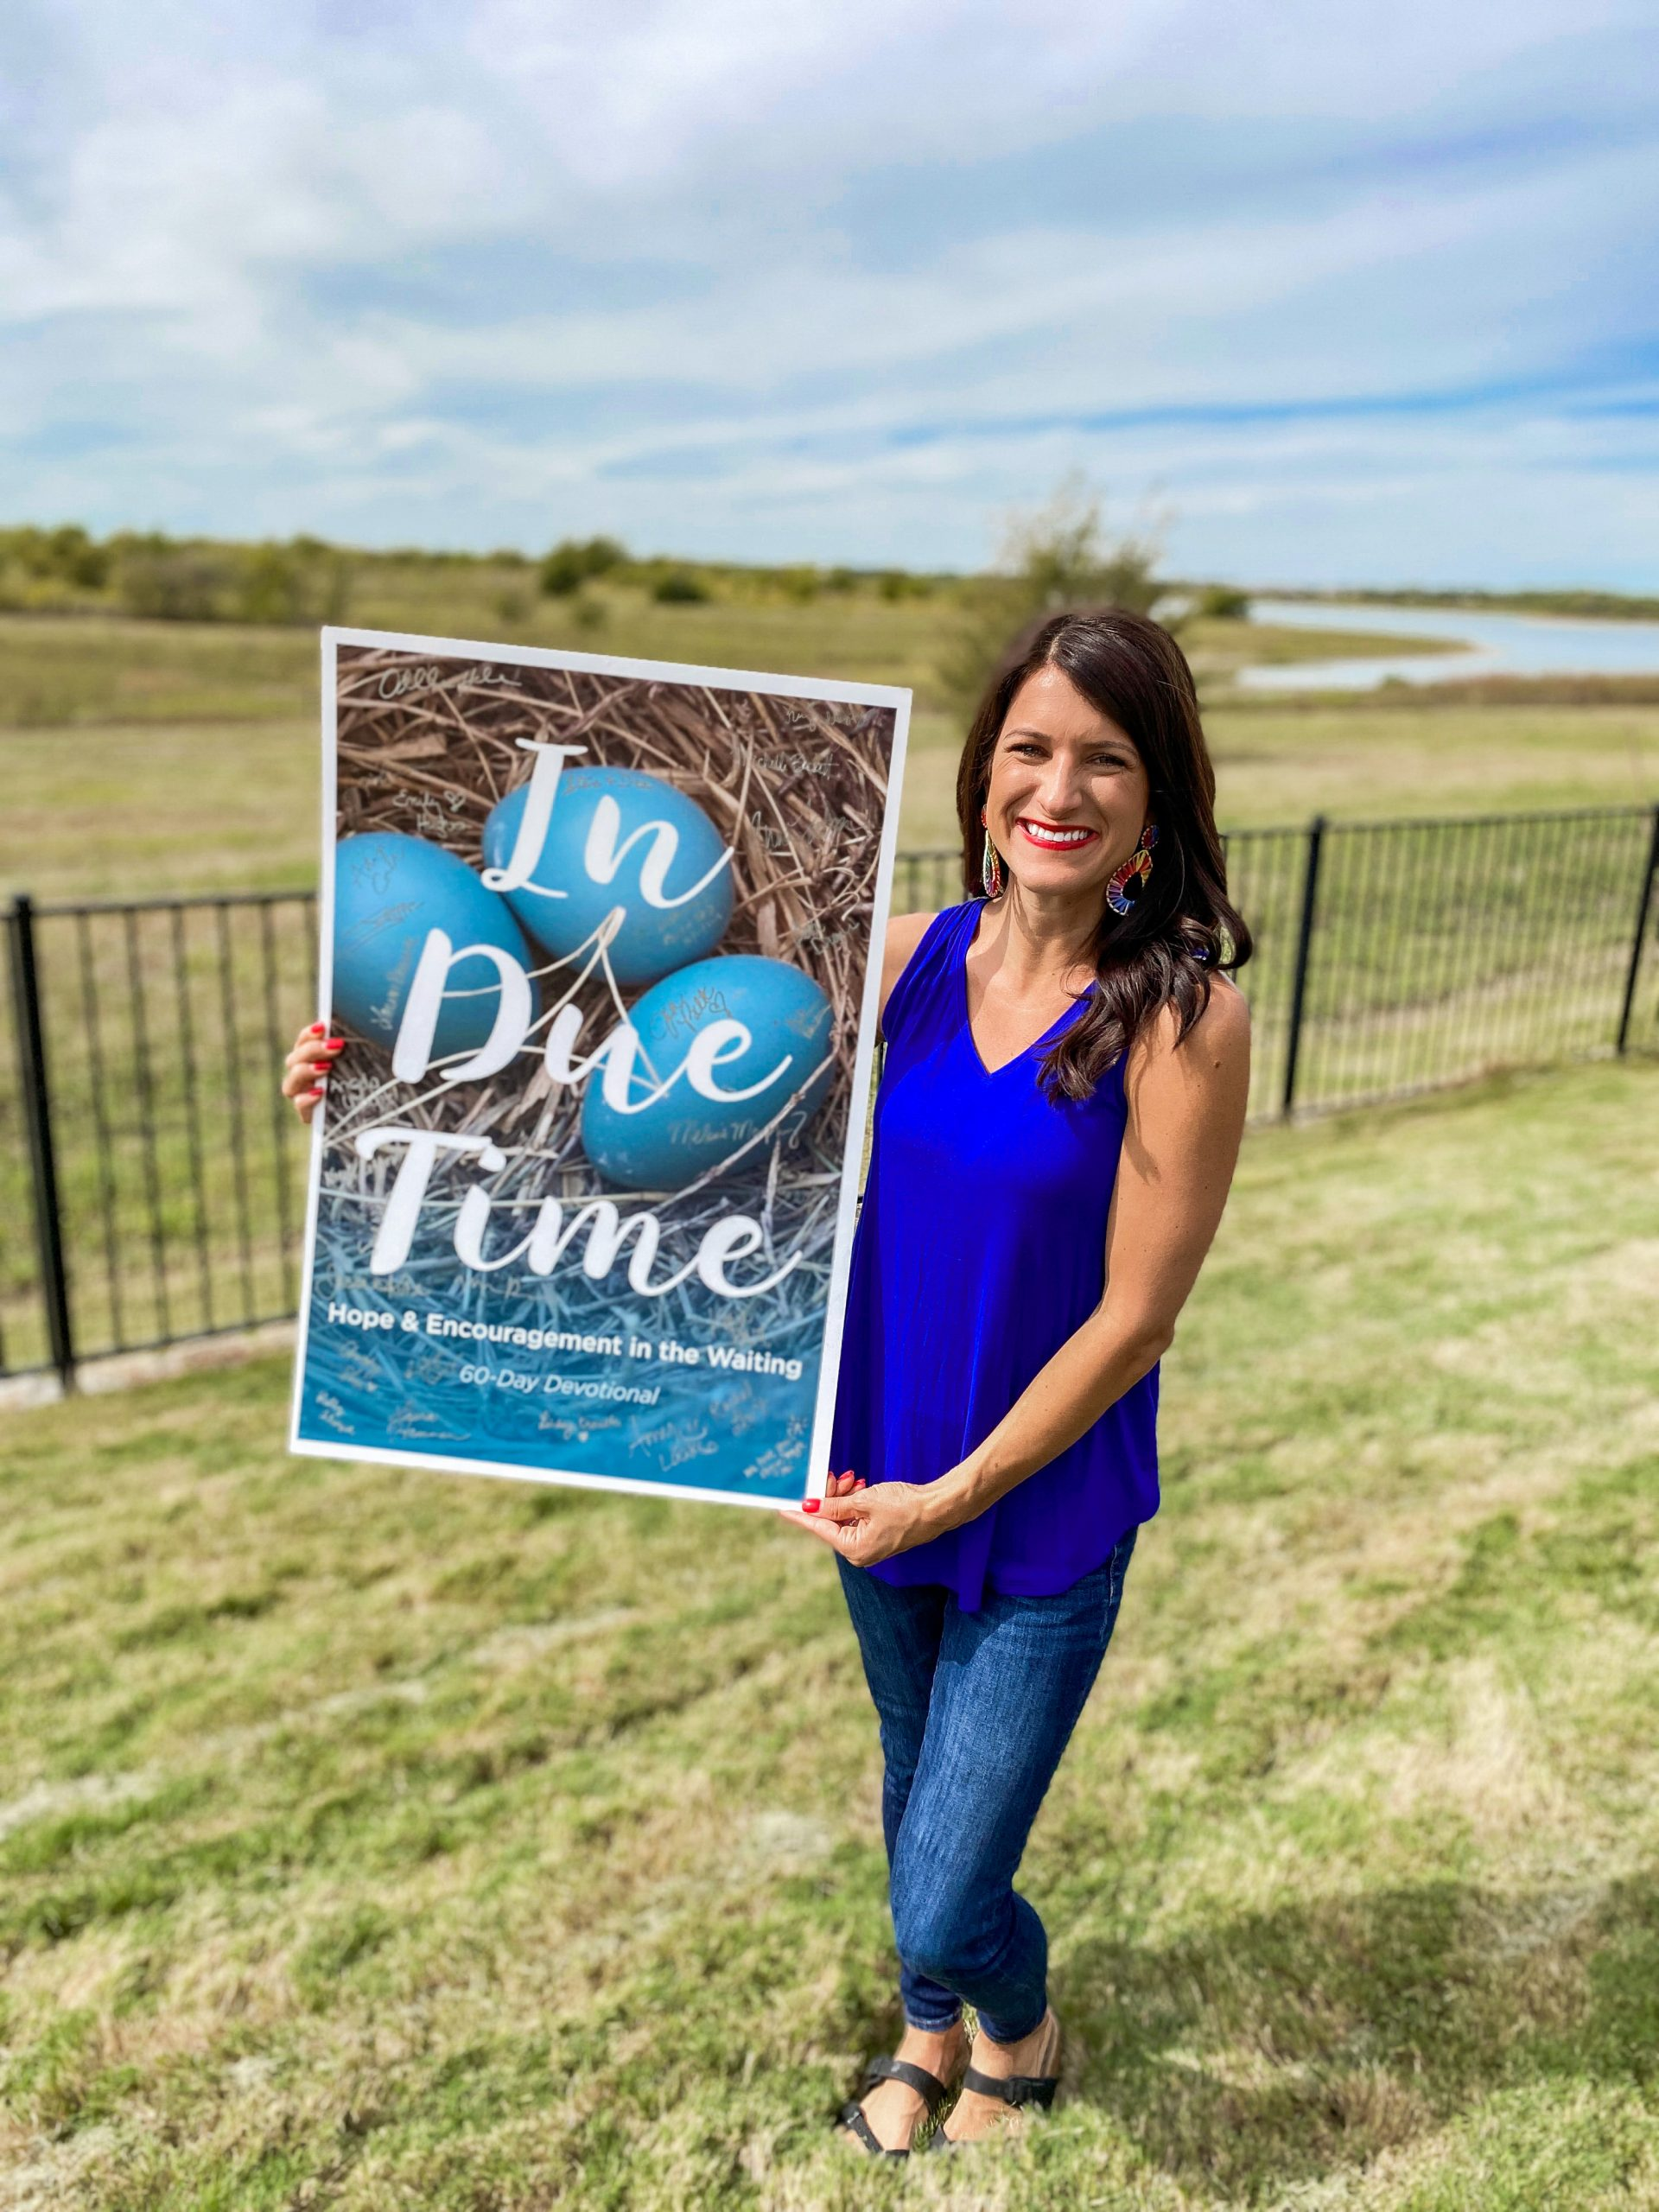 in due time book for hope and encouragement